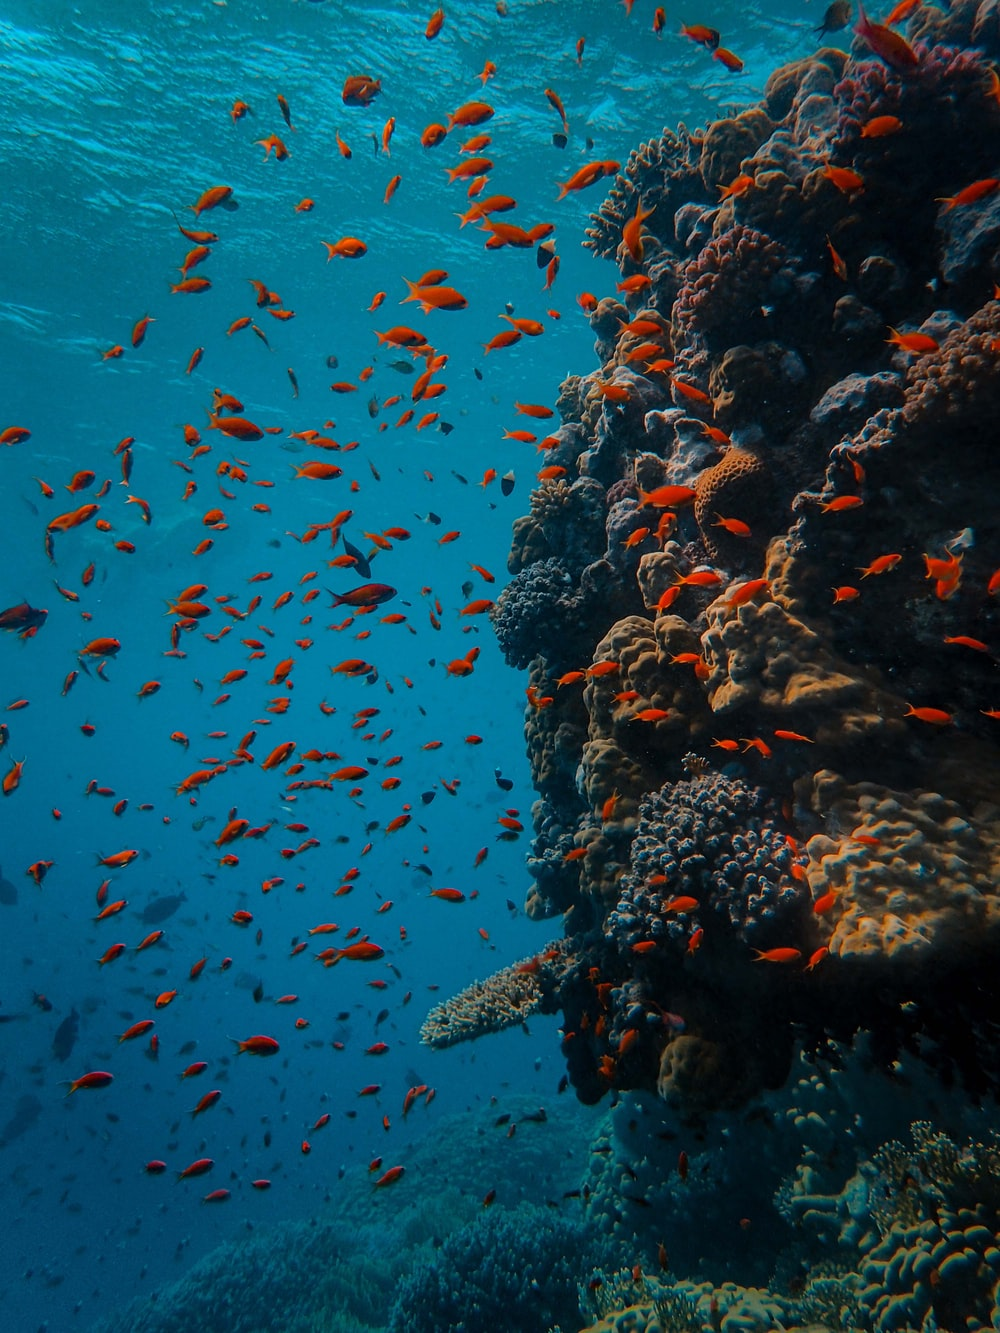 school of orange fish